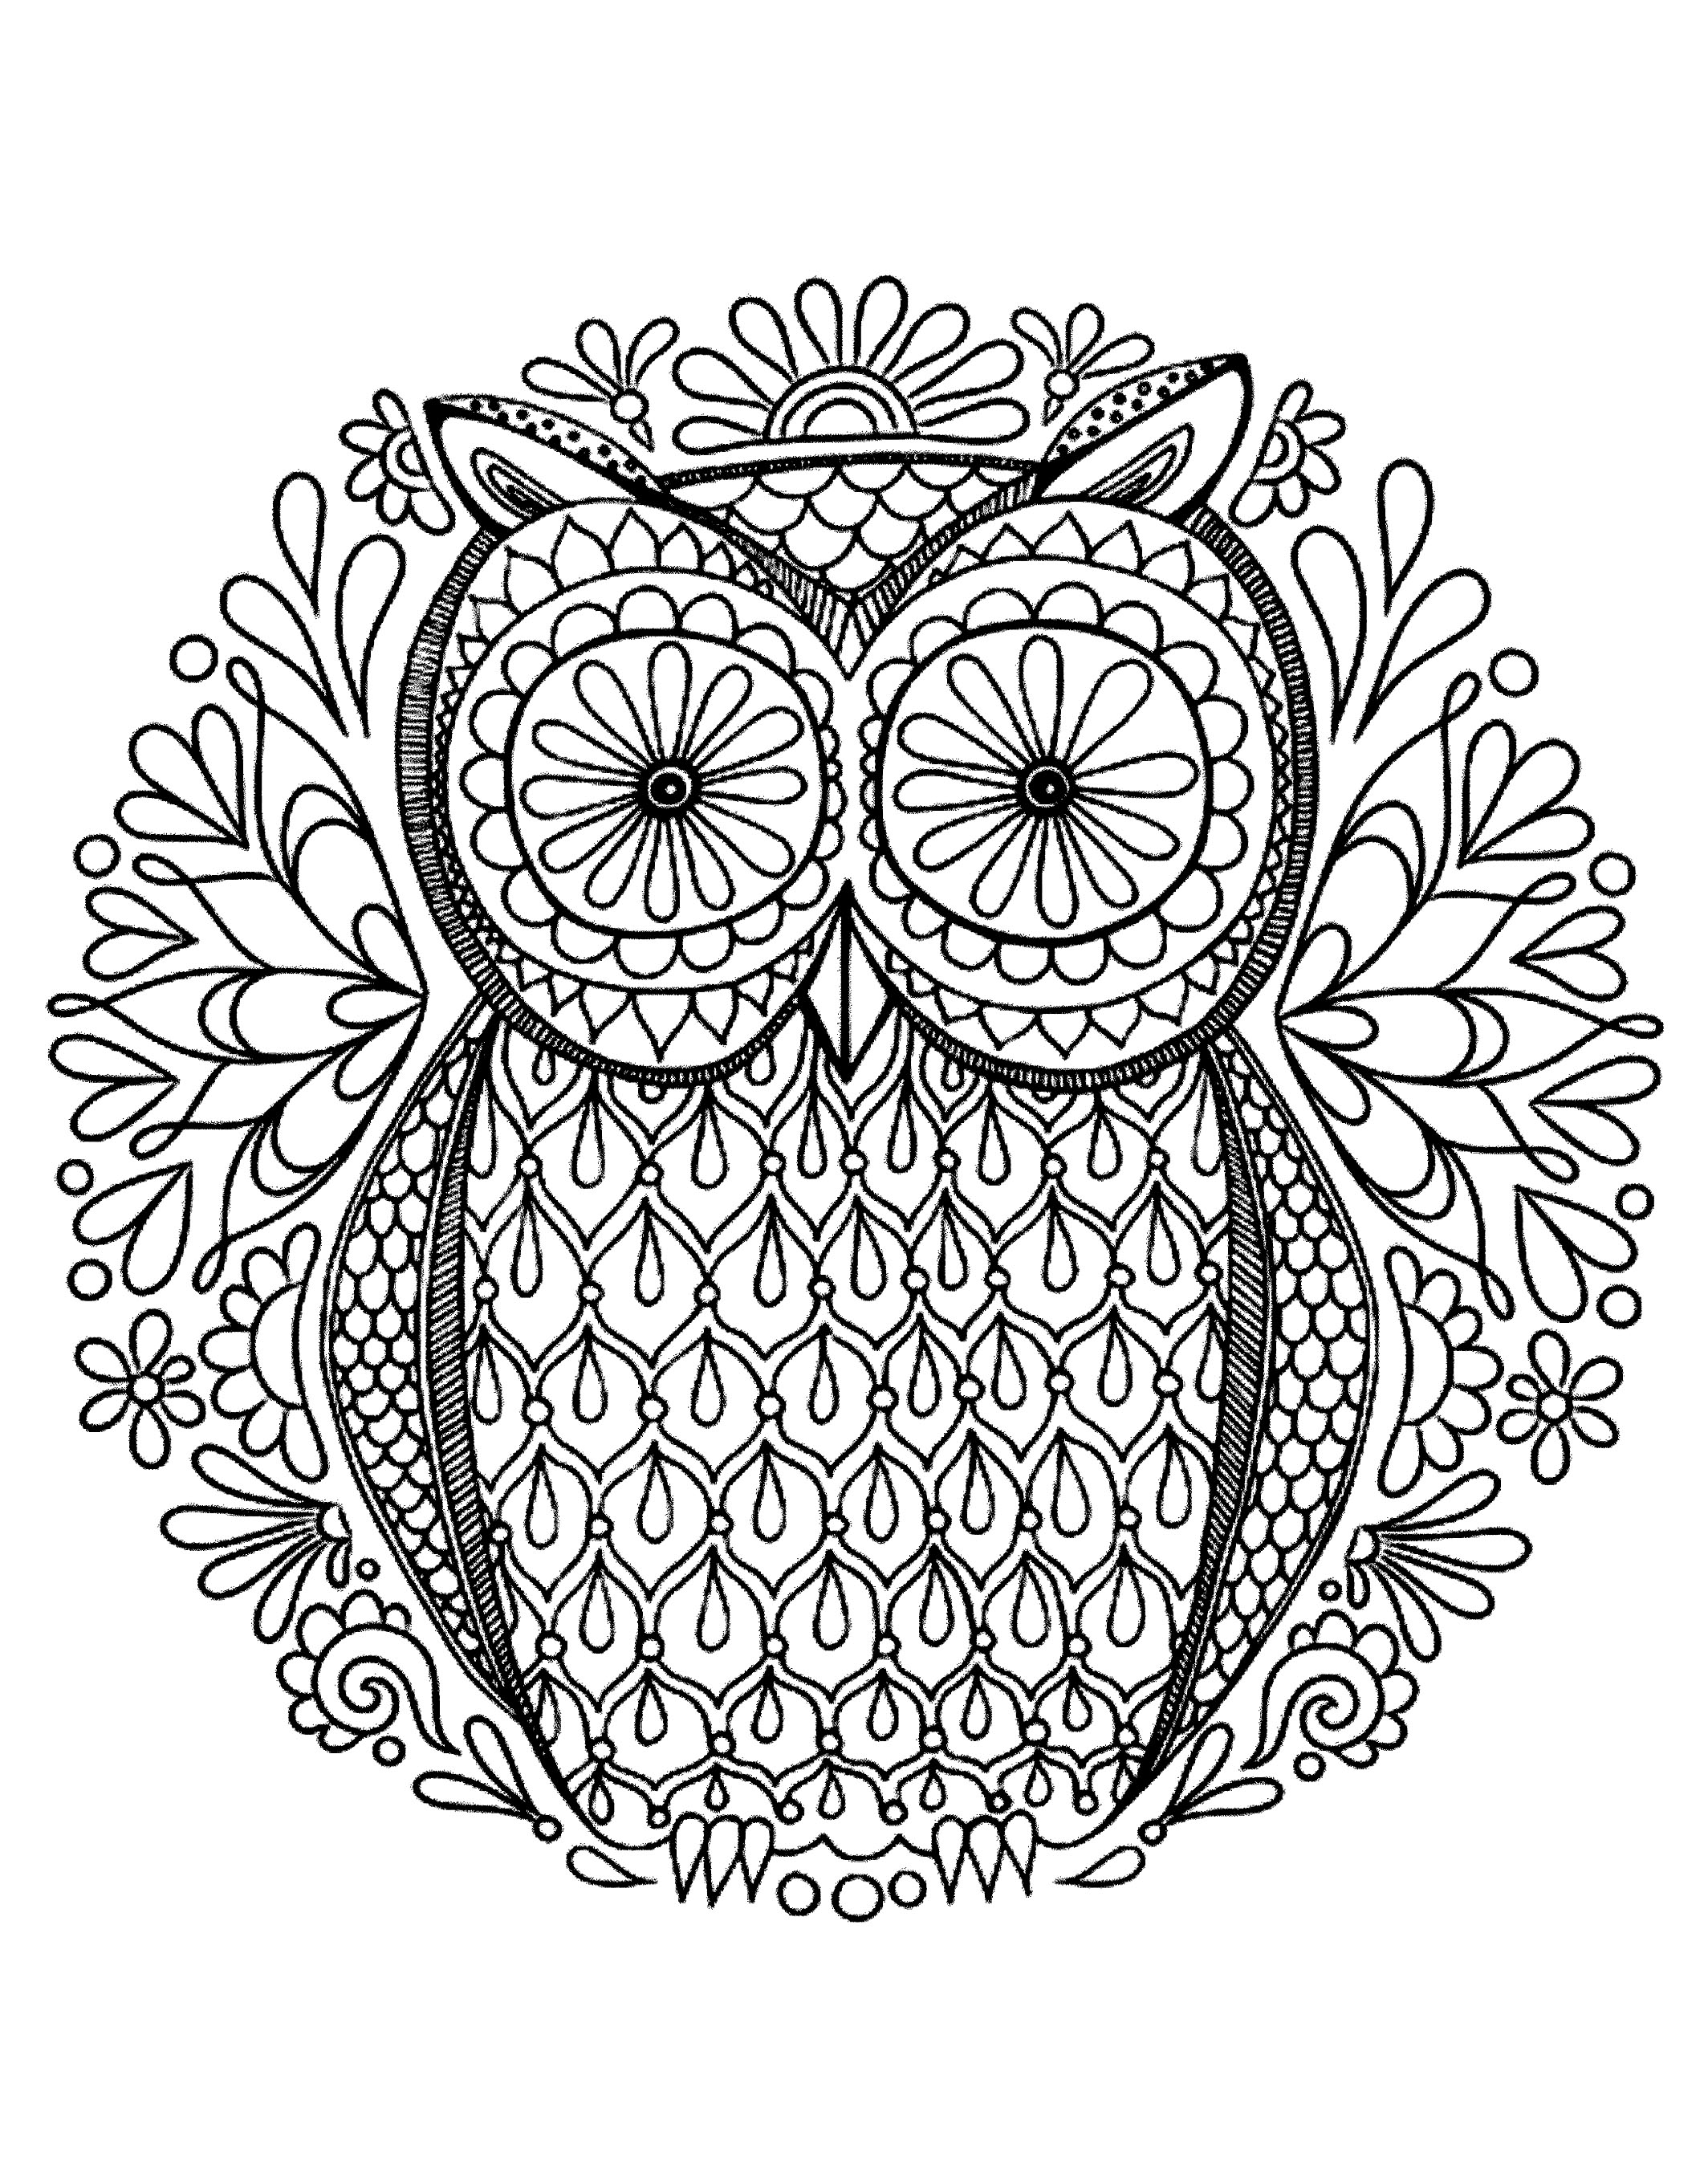 owl adult coloring pages Very simple owl   Owls Adult Coloring Pages owl adult coloring pages